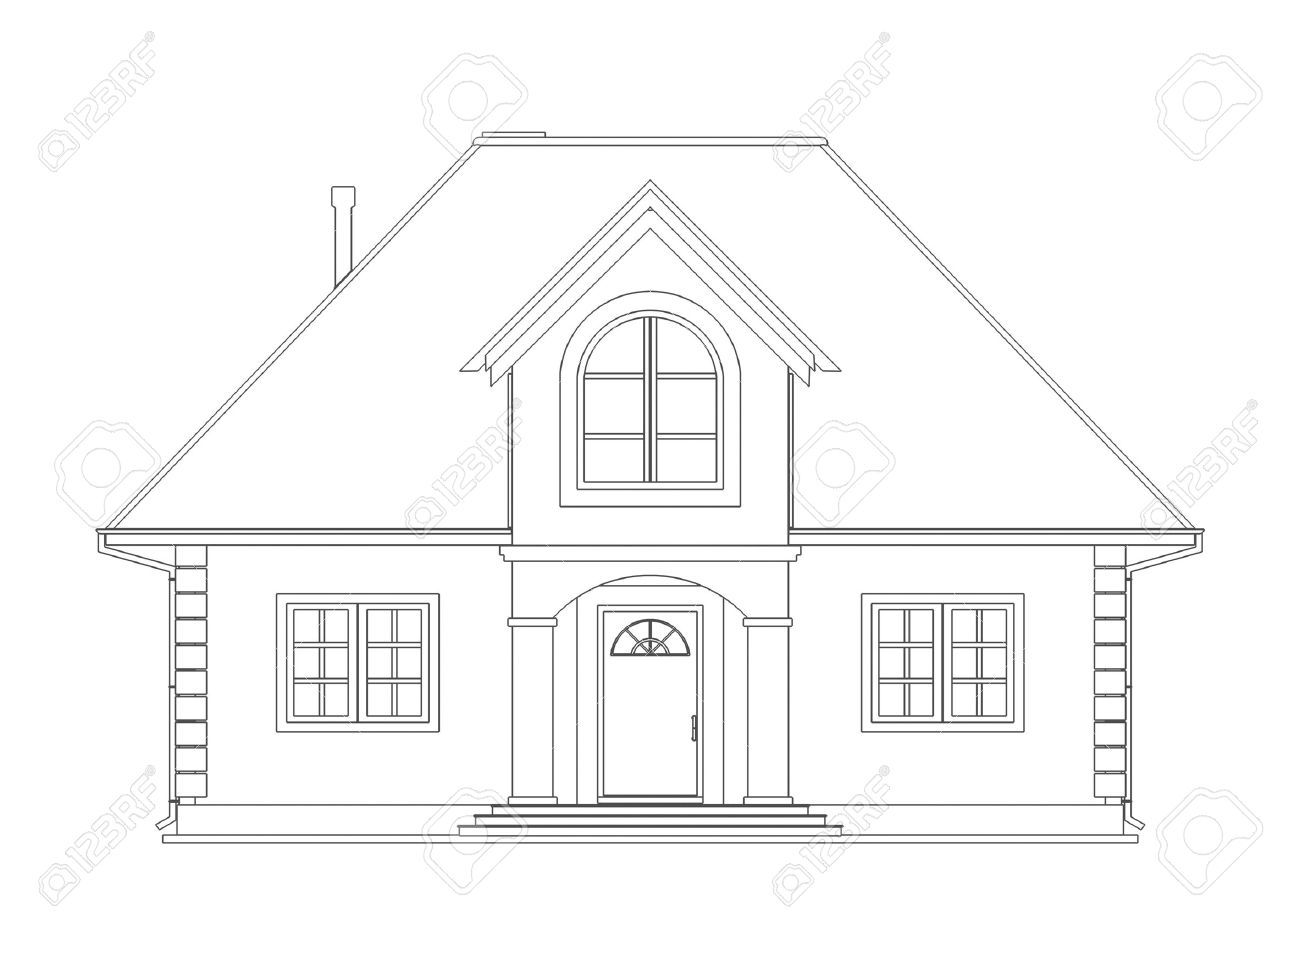 The house to draw house technical draw stock photo for House sketches from photos